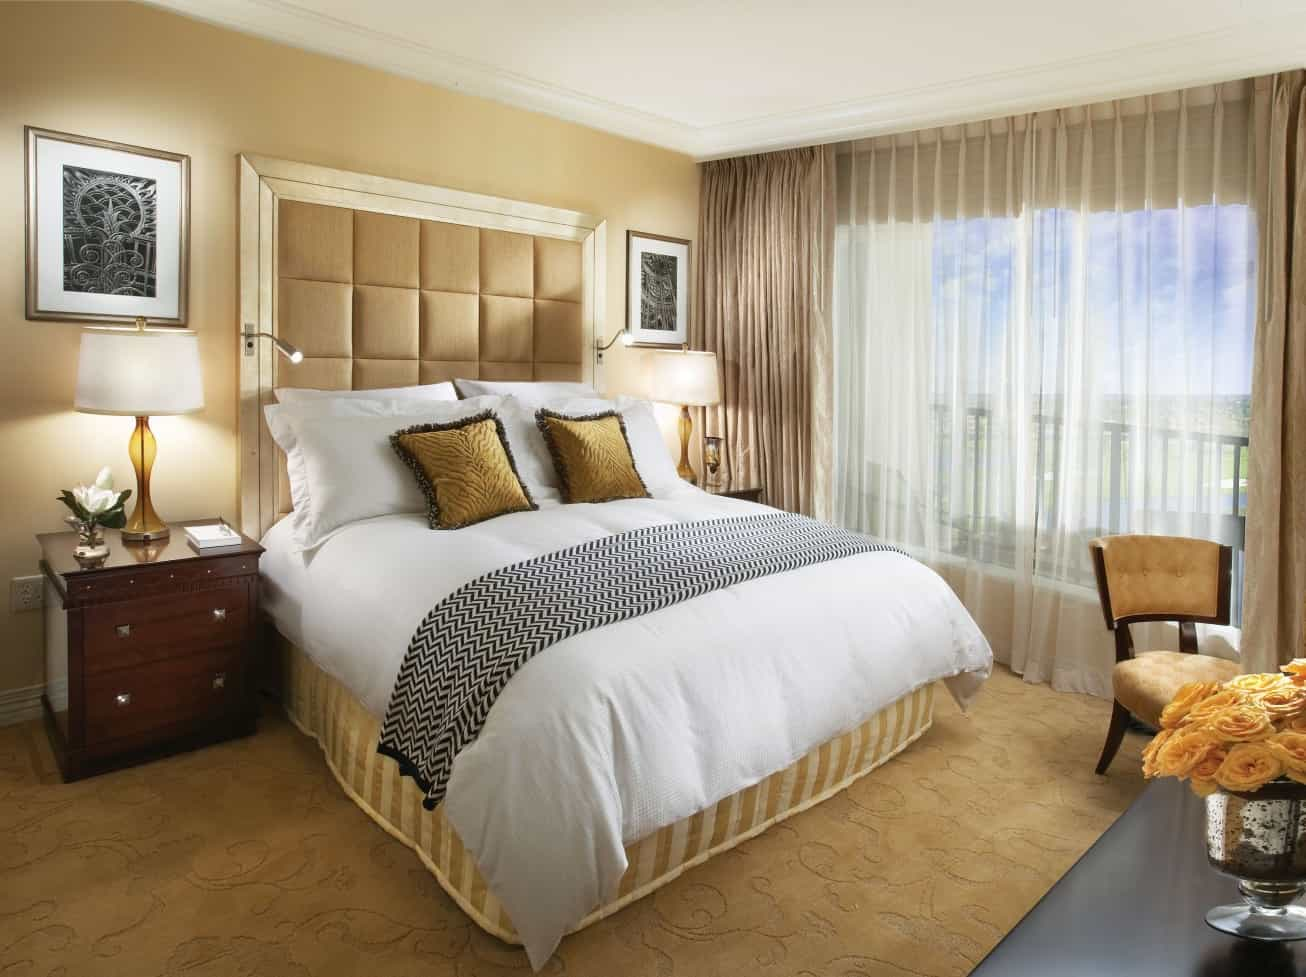 Hotel Bedroom Inspiration With Modern Floor Bedding On A Furry Carpet (Image 11 of 18)